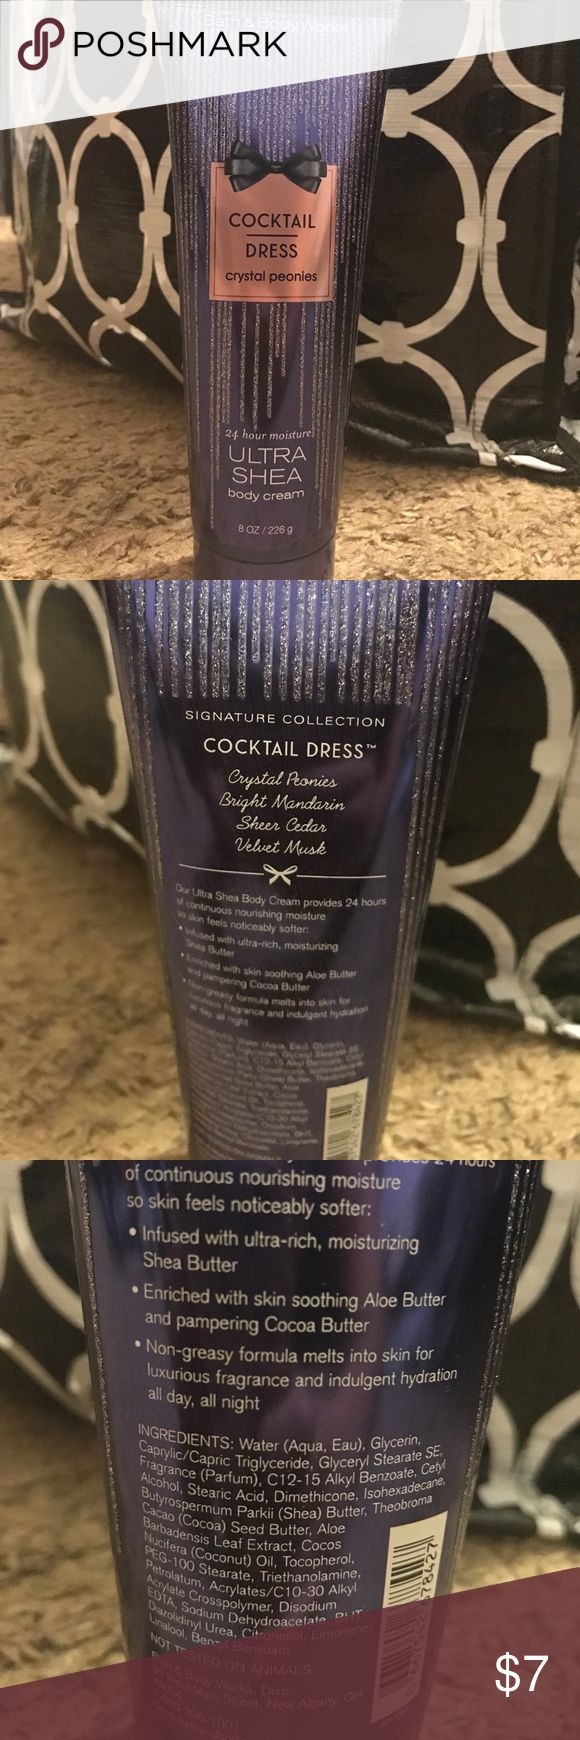 Bath and Body works Ultra Shea body cream Cocktail dress 24 hour moisture ultra shea body cream from bath and body works 8 oz Other